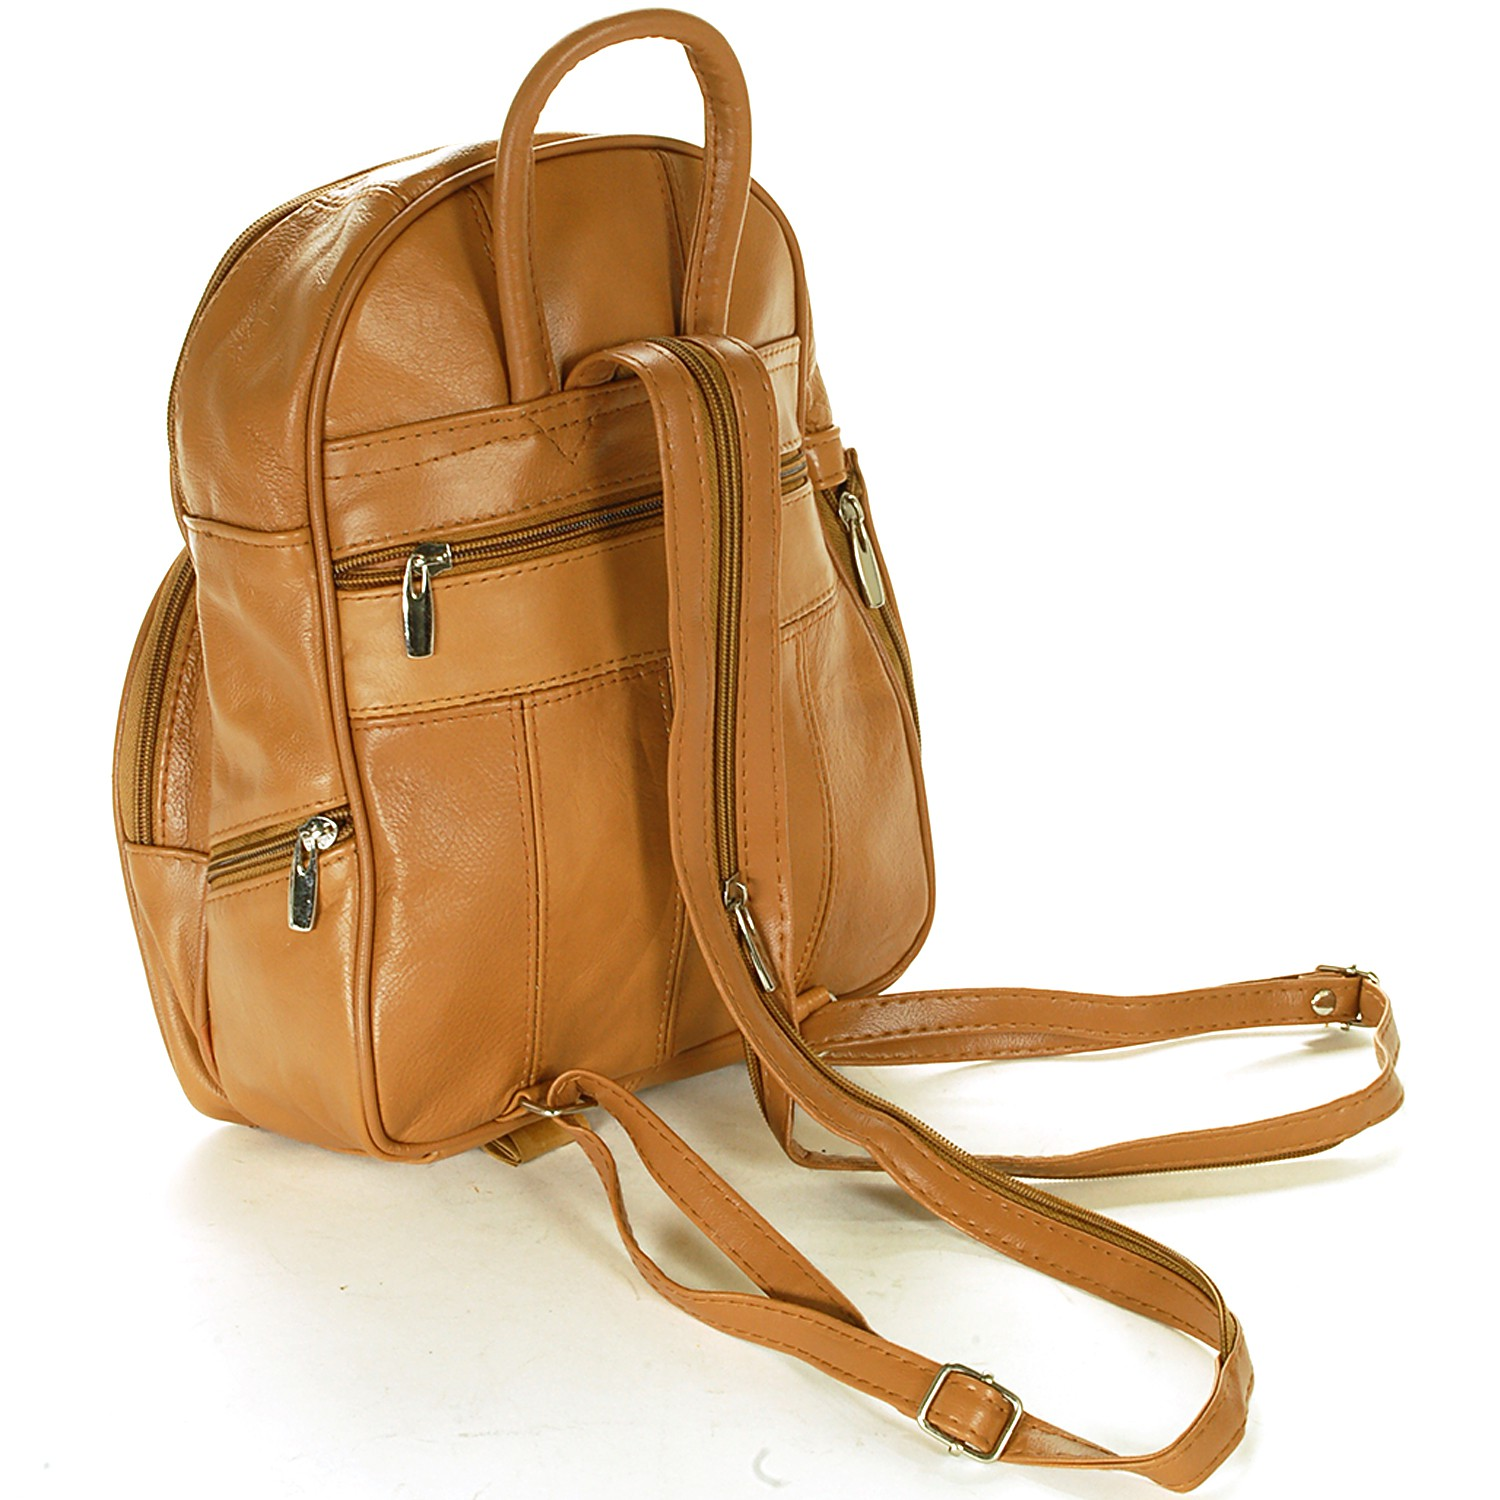 Back Purse : Details about New Leather Backpack Purse Sling Bag Back Pack Shoulder ...